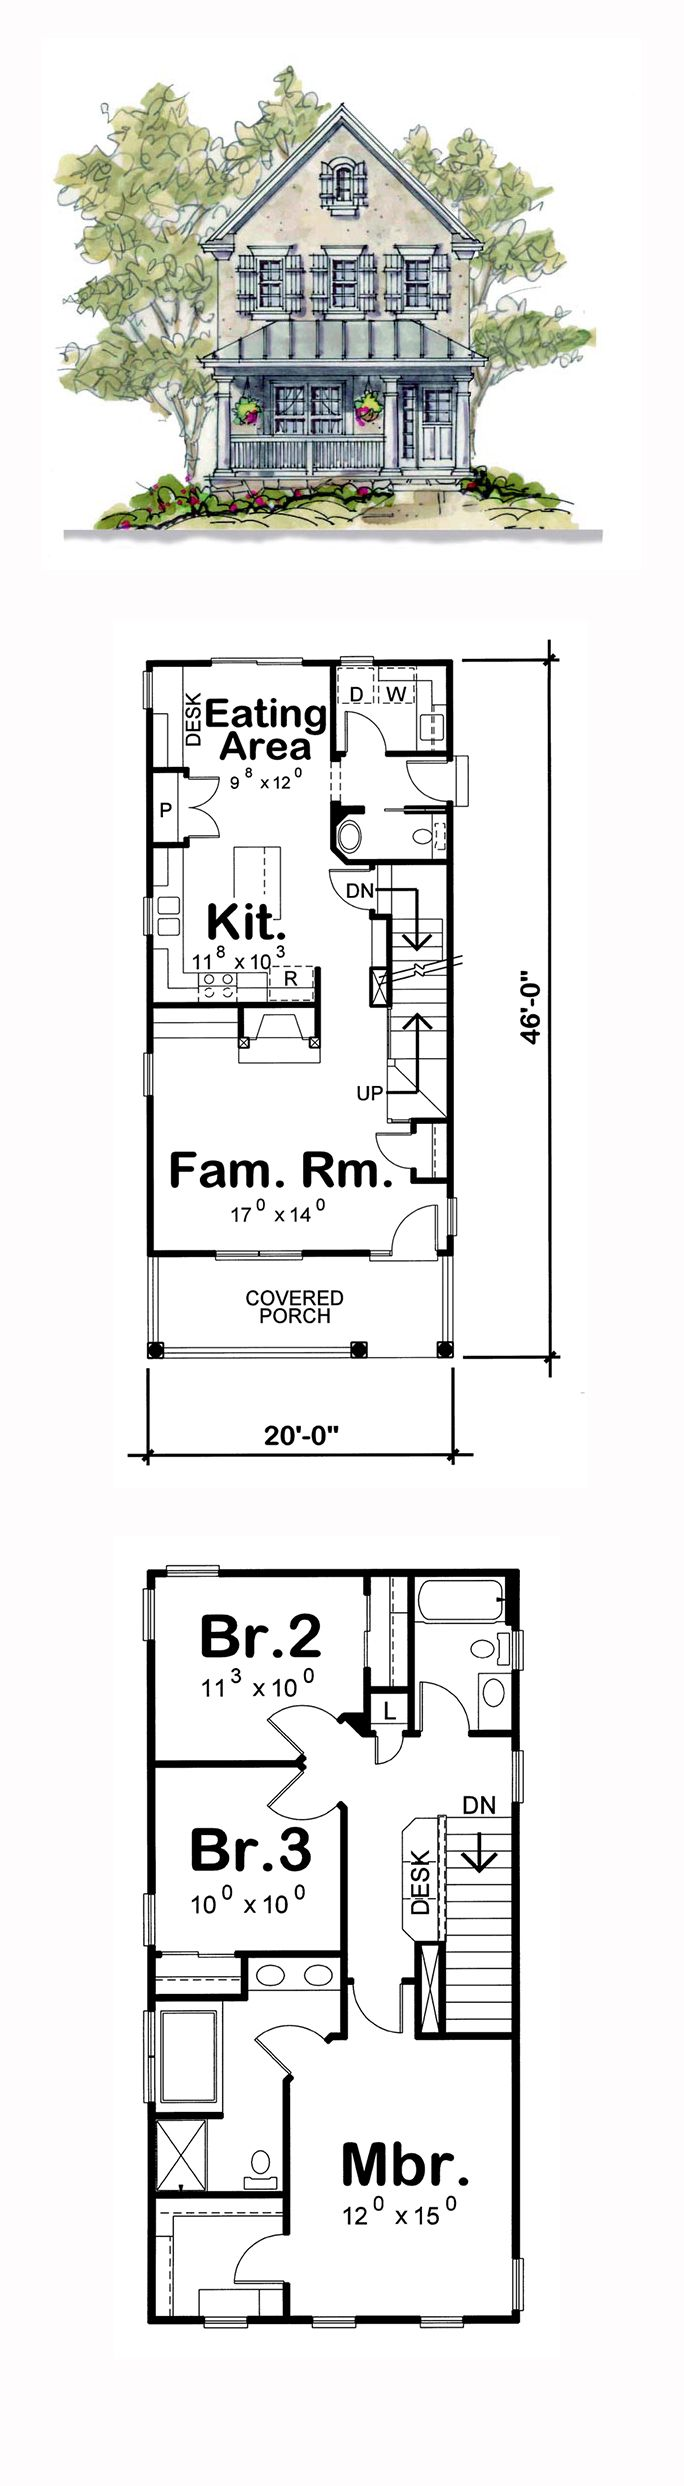 Best 25 narrow lot house plans ideas on pinterest for 3 story house plans narrow lot